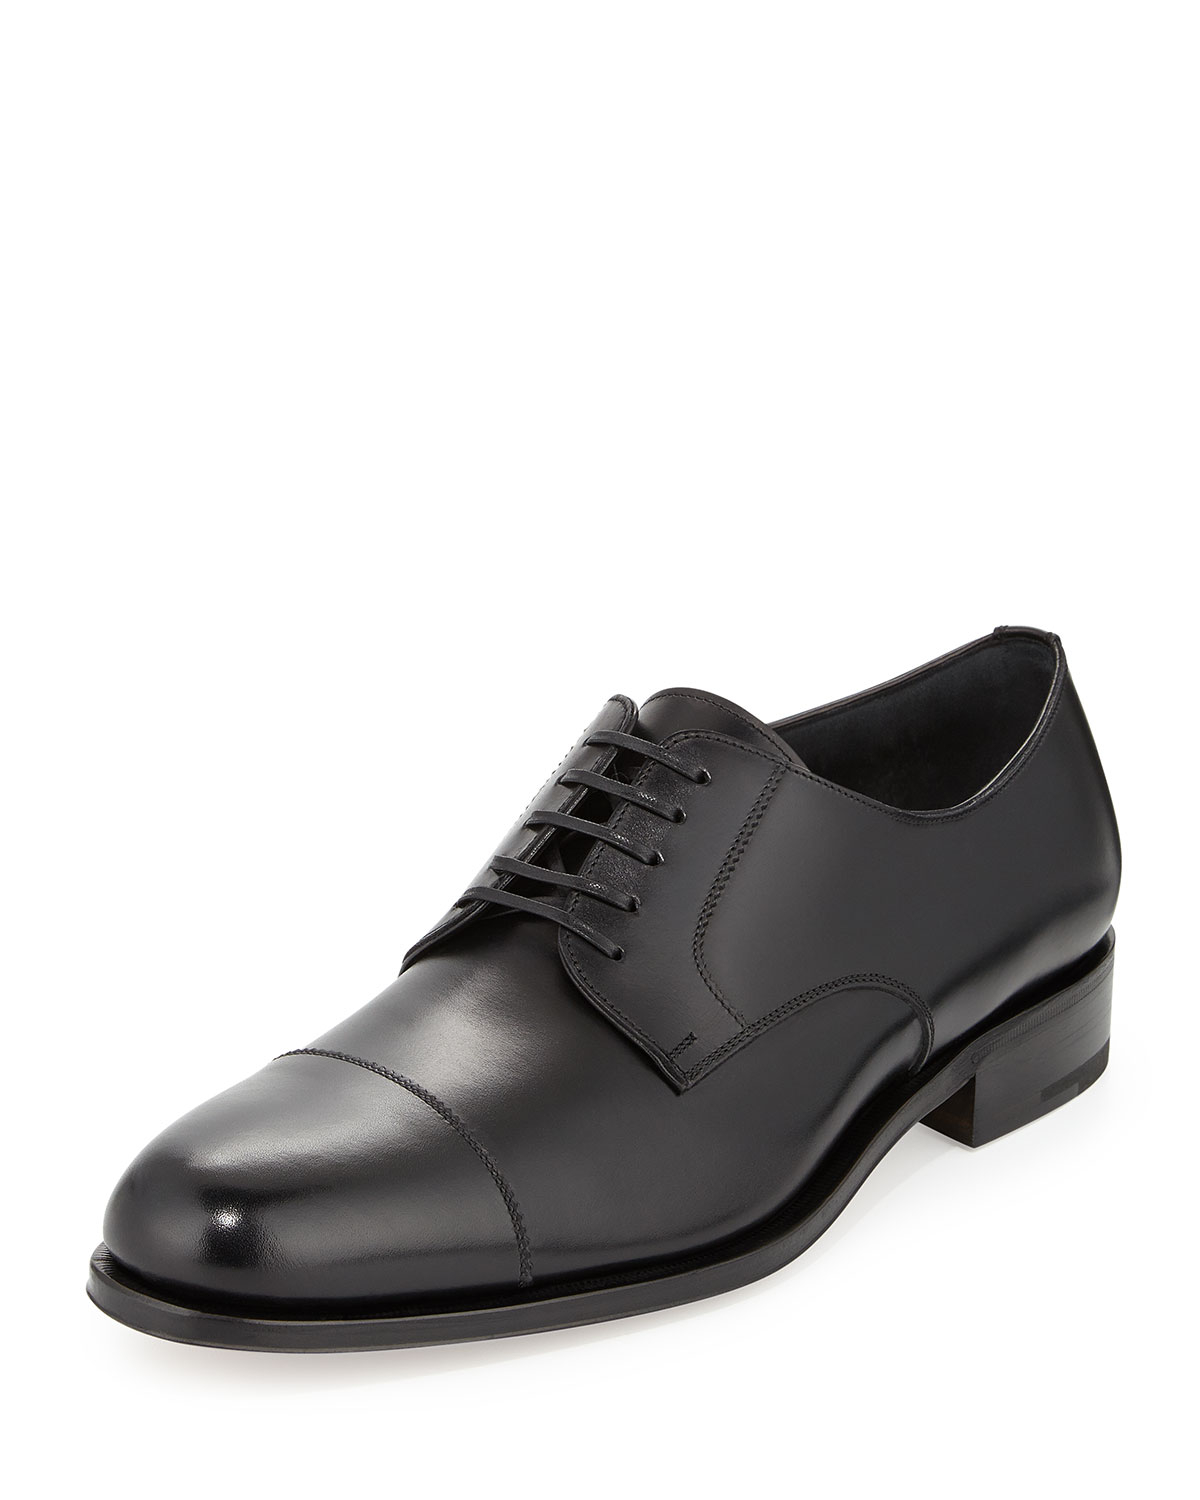 ferragamo rand calfskin lace up shoes in black for lyst